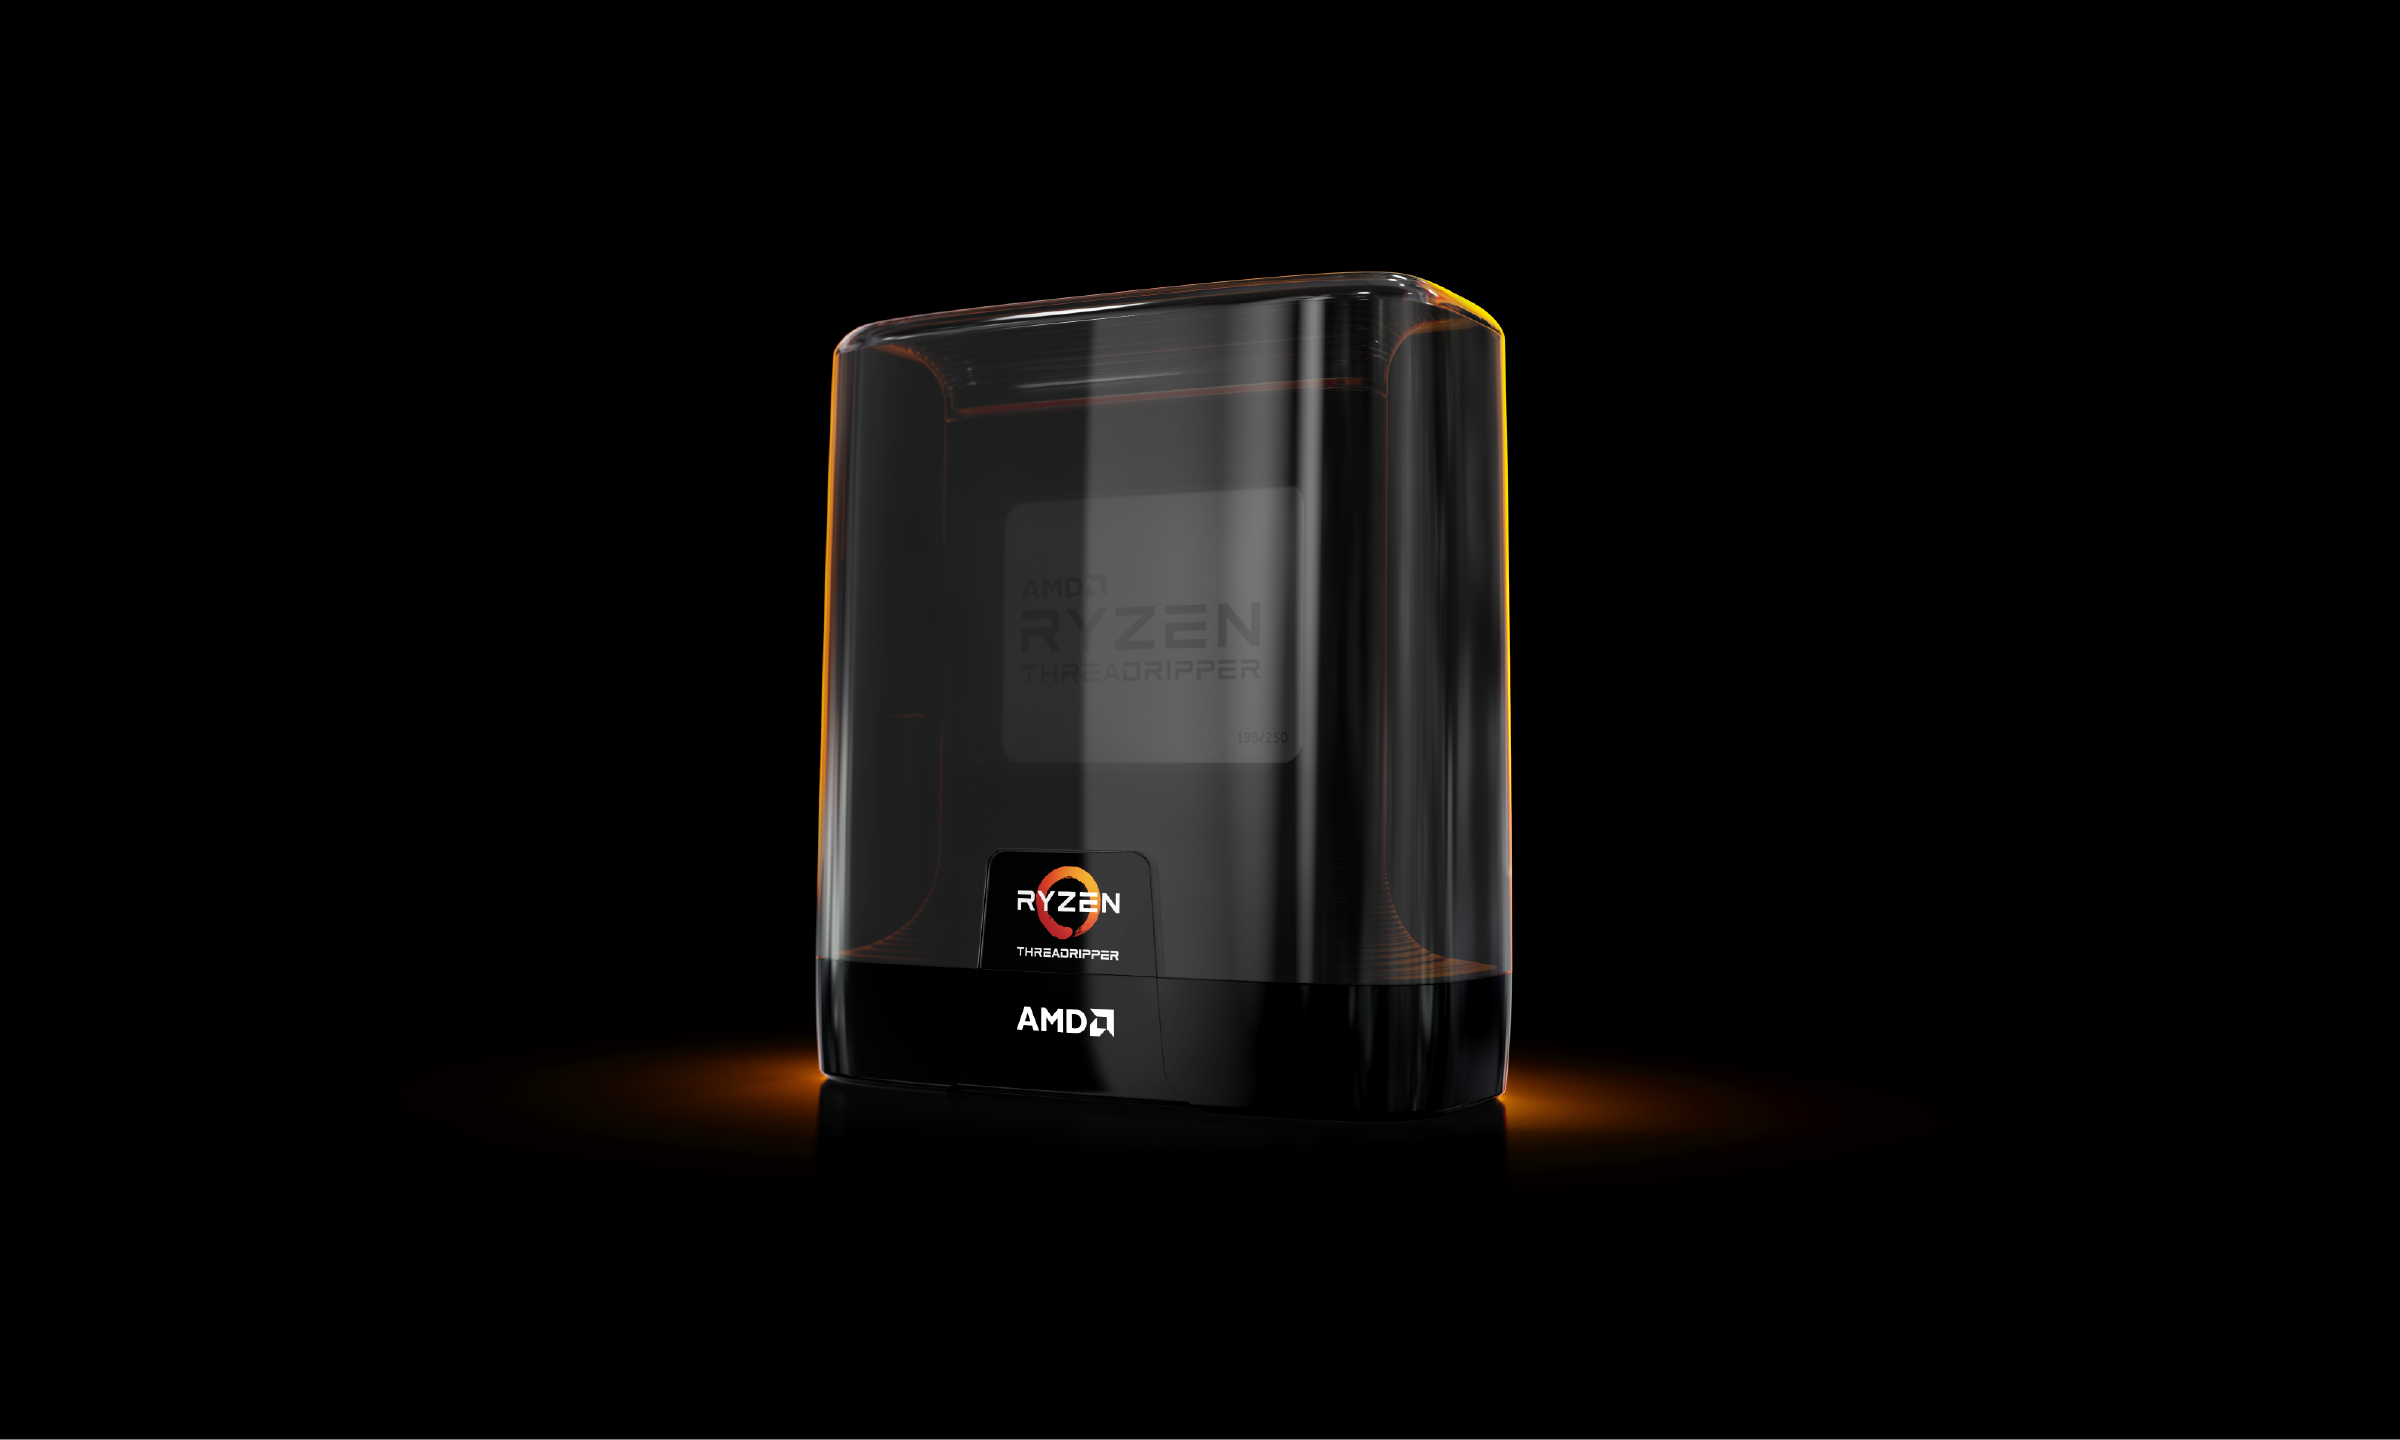 AMD Threadripper 3000 series: The ultimate unboxing experience for the fastest consumer CPU ever built